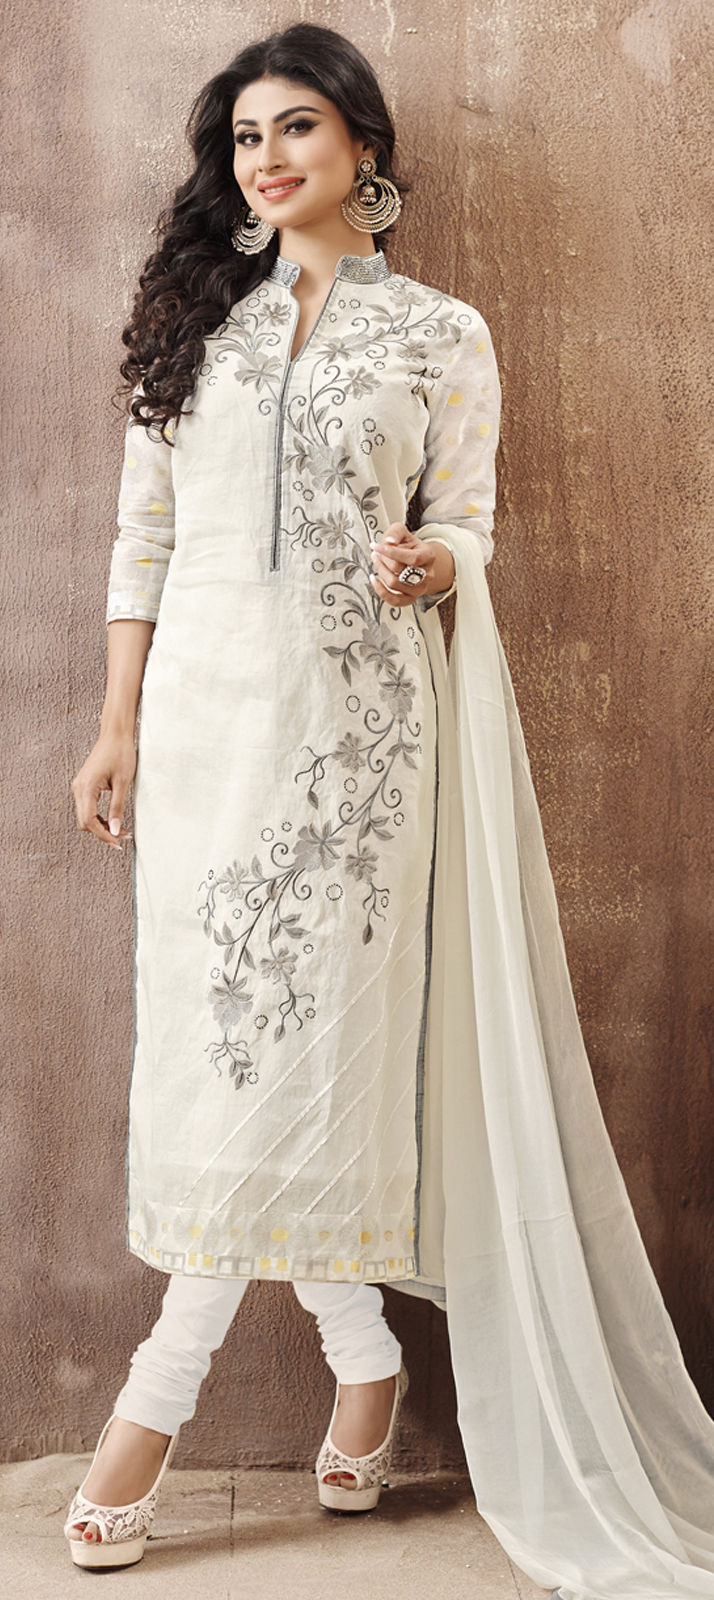 Cotton Bollywood Salwar Kameez in White and Off White with Resham work